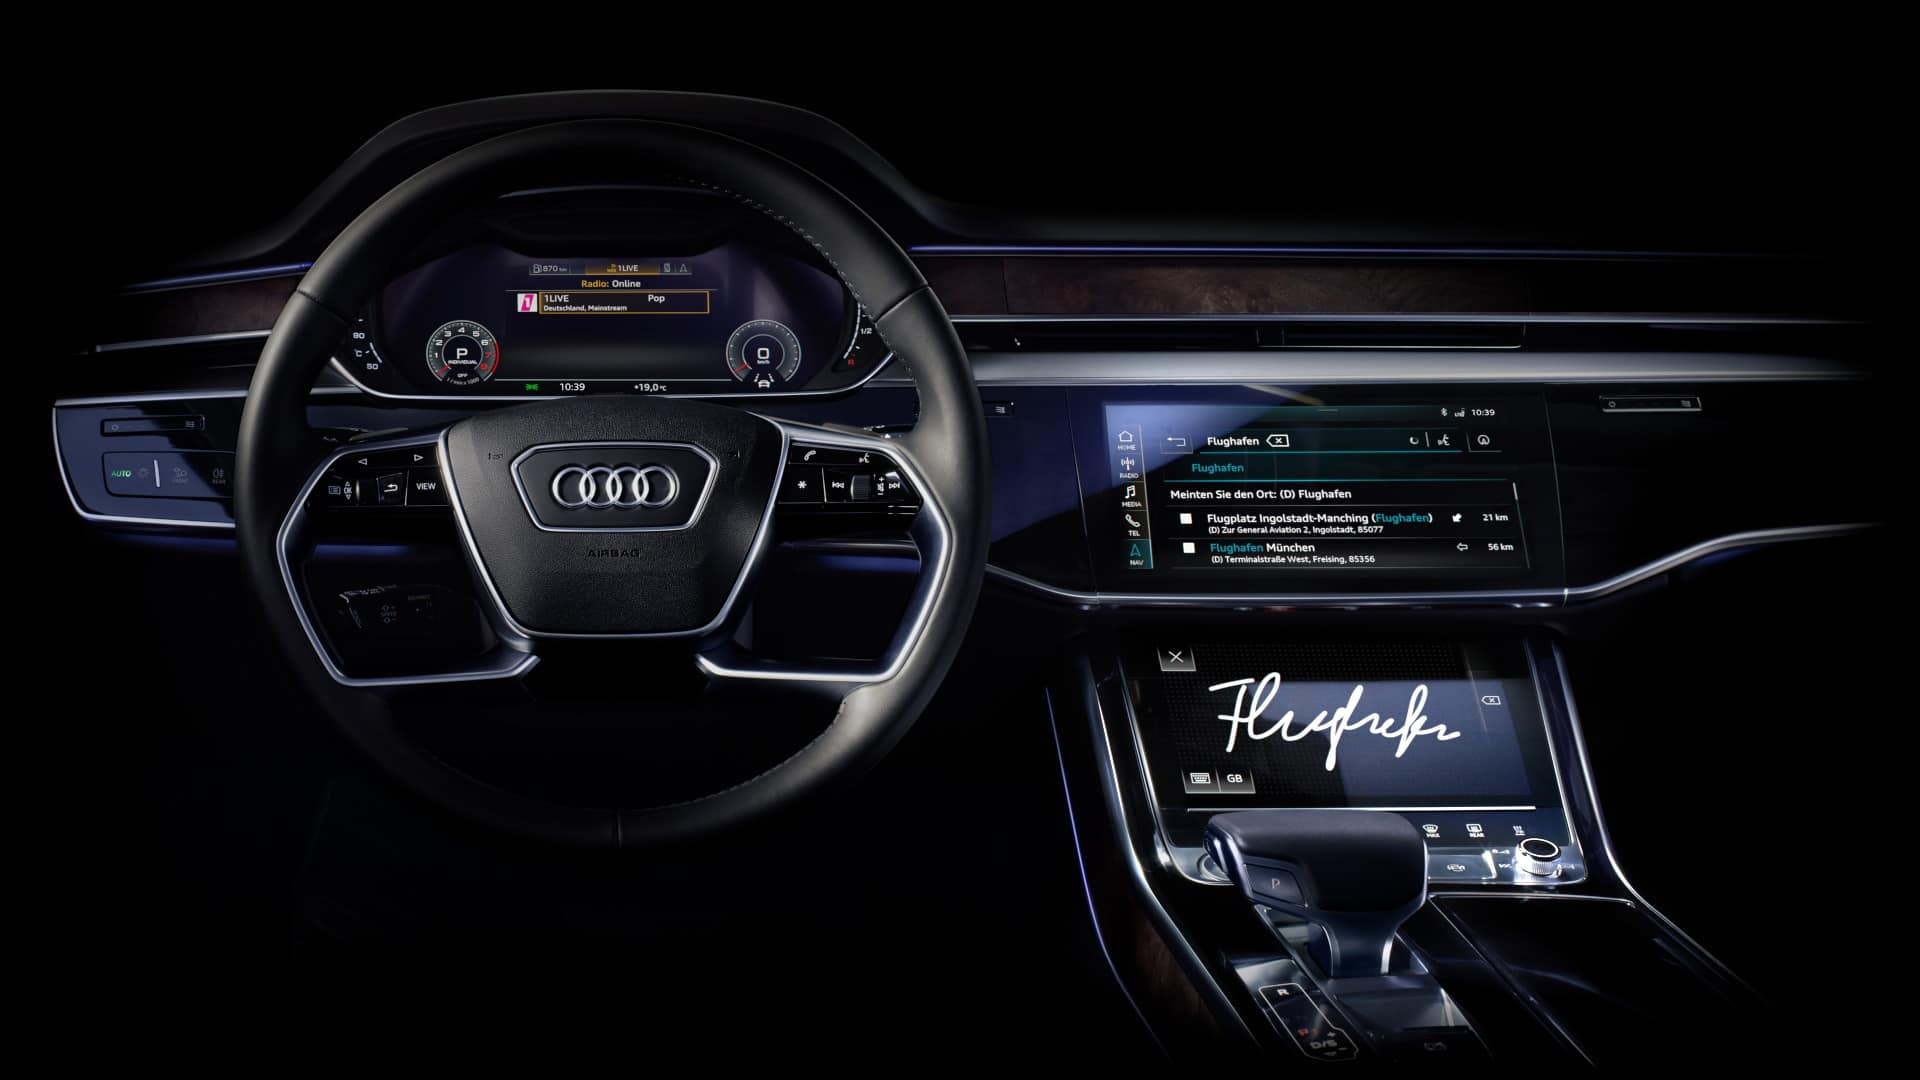 The MMI in Audi, which you can use to access the Audi connect services